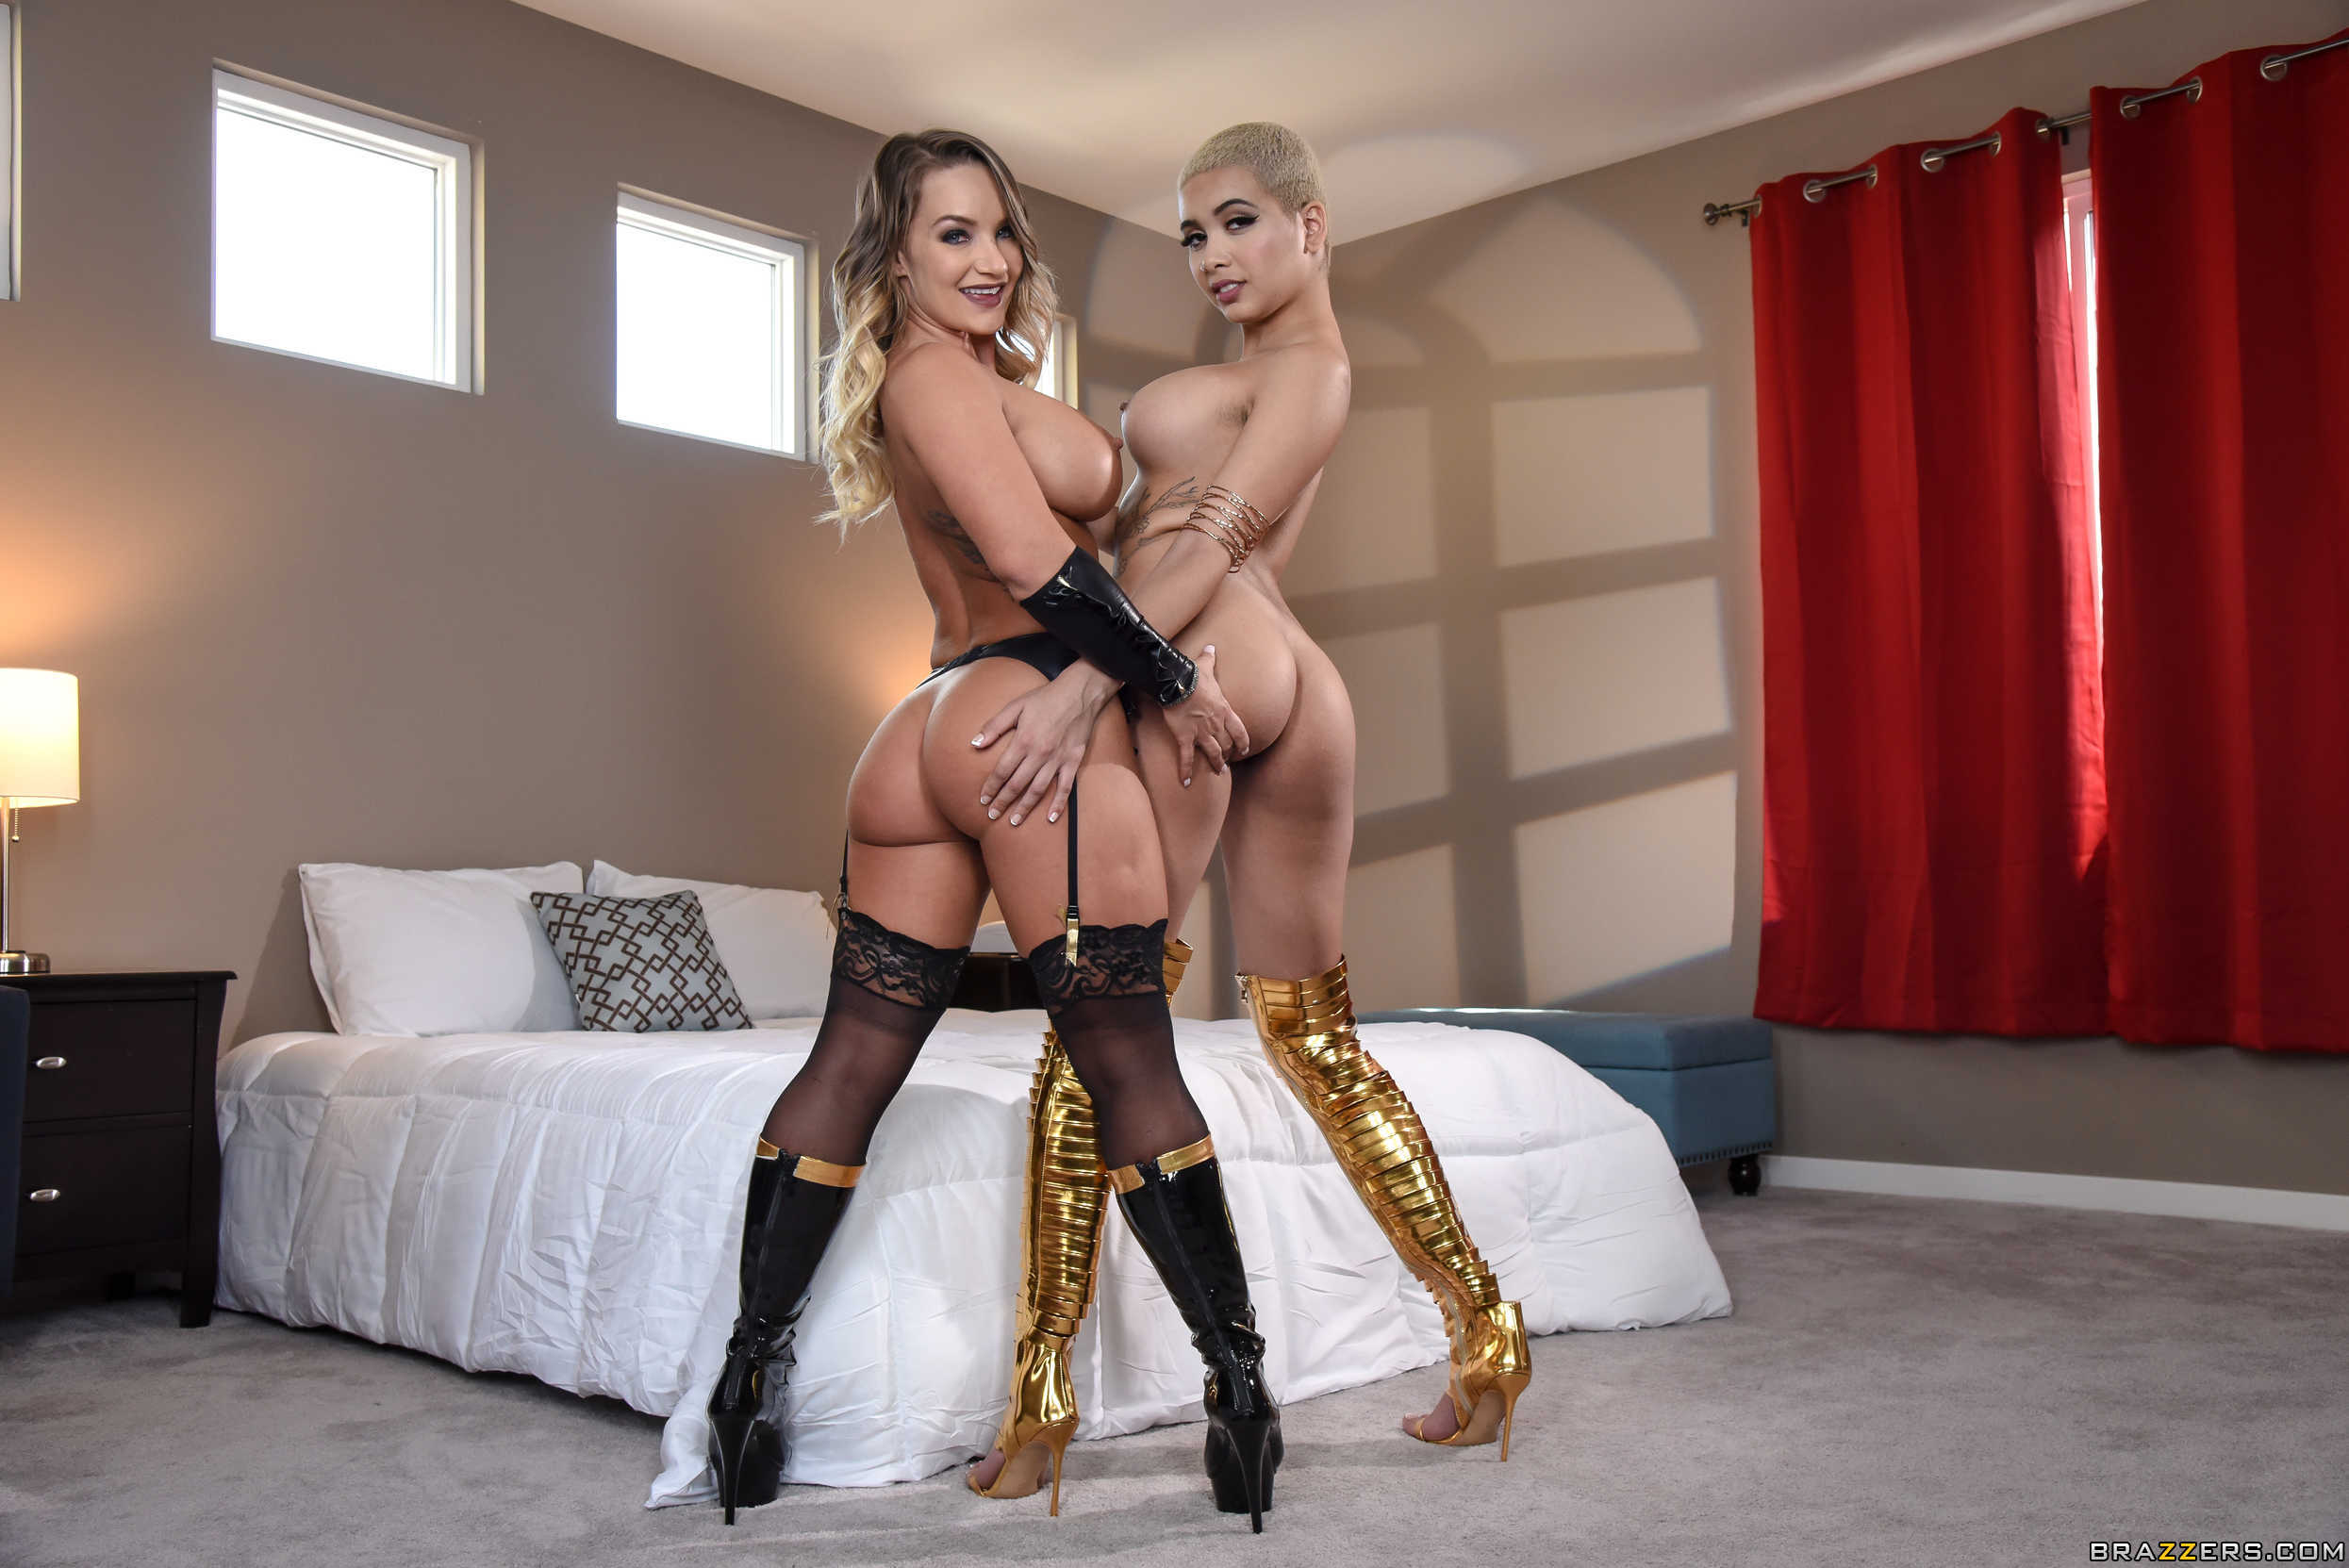 ZZ Series - Cali Carter, Aalitah Hadid - The Exxxceptions Episode 2